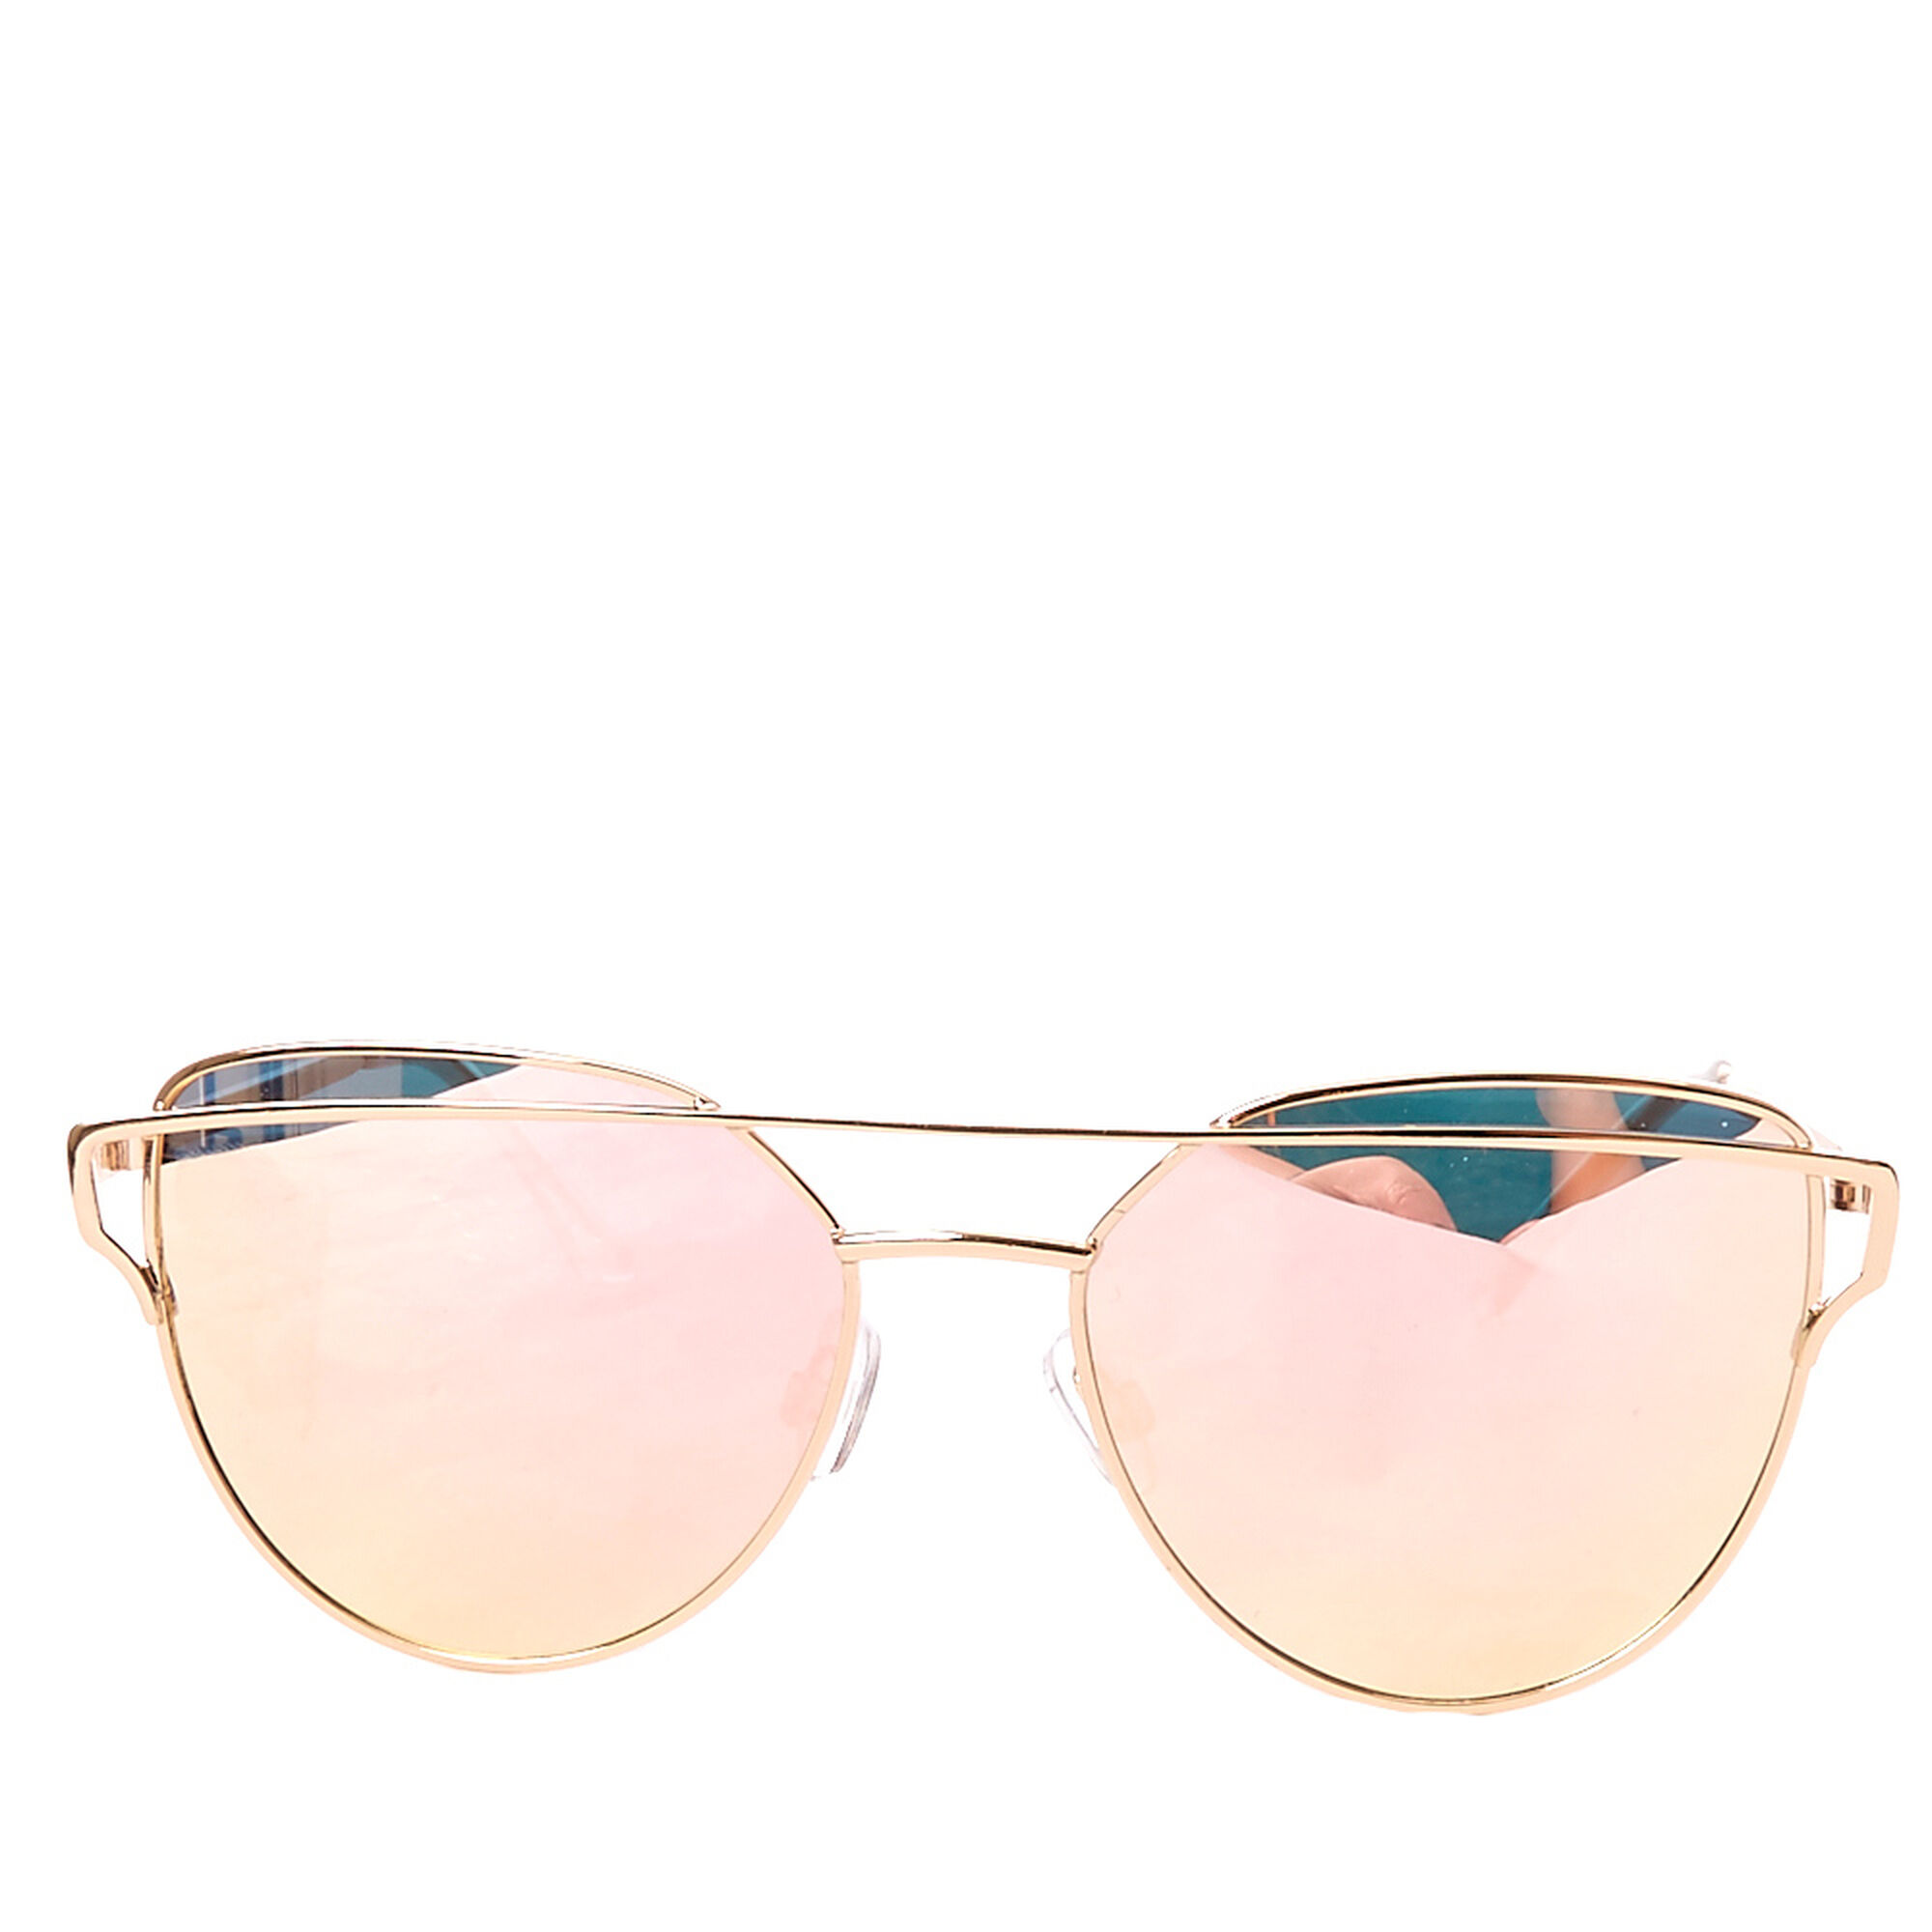 c9e51bbd047 ... Rose Gold Mirrored Cat Eye Sunglasses